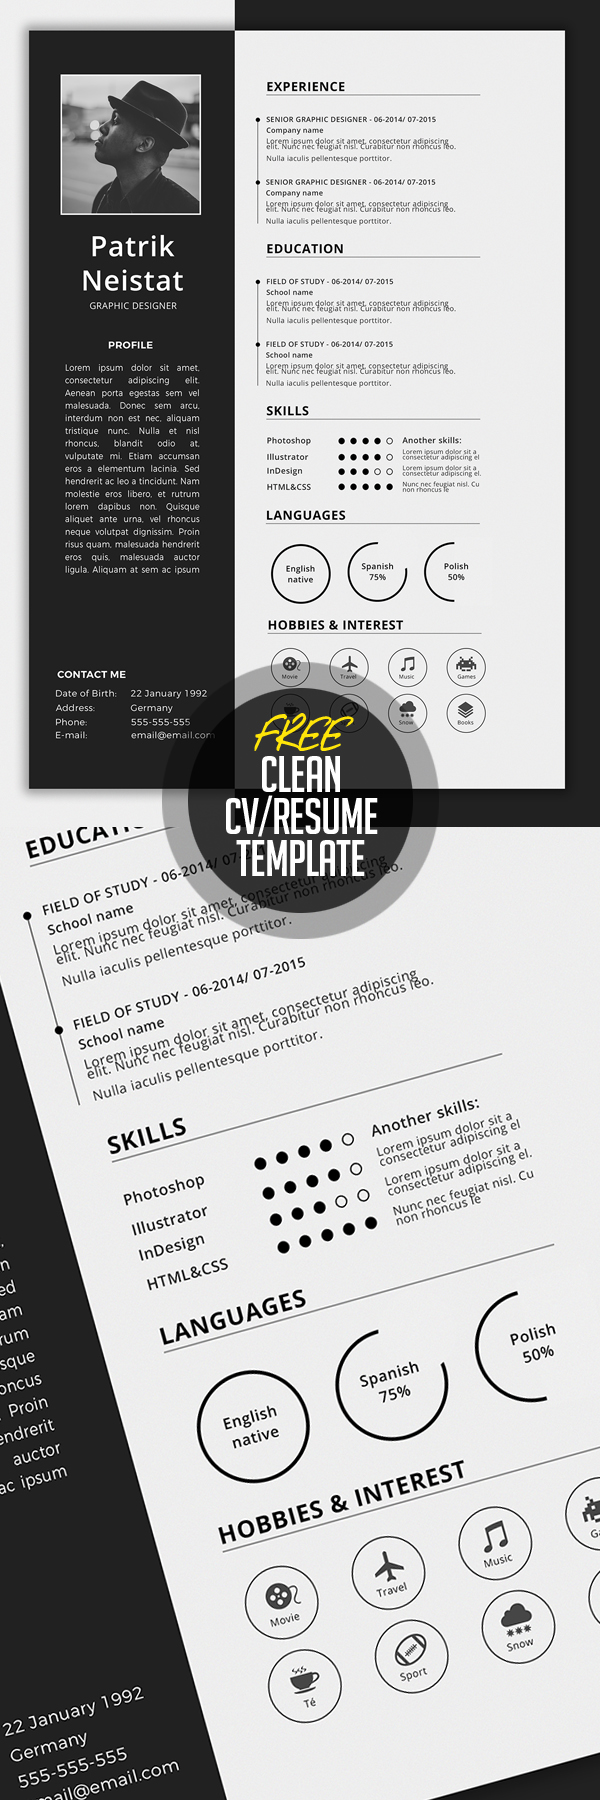 simple cvresume template free download - Free Resume Templates For Pages